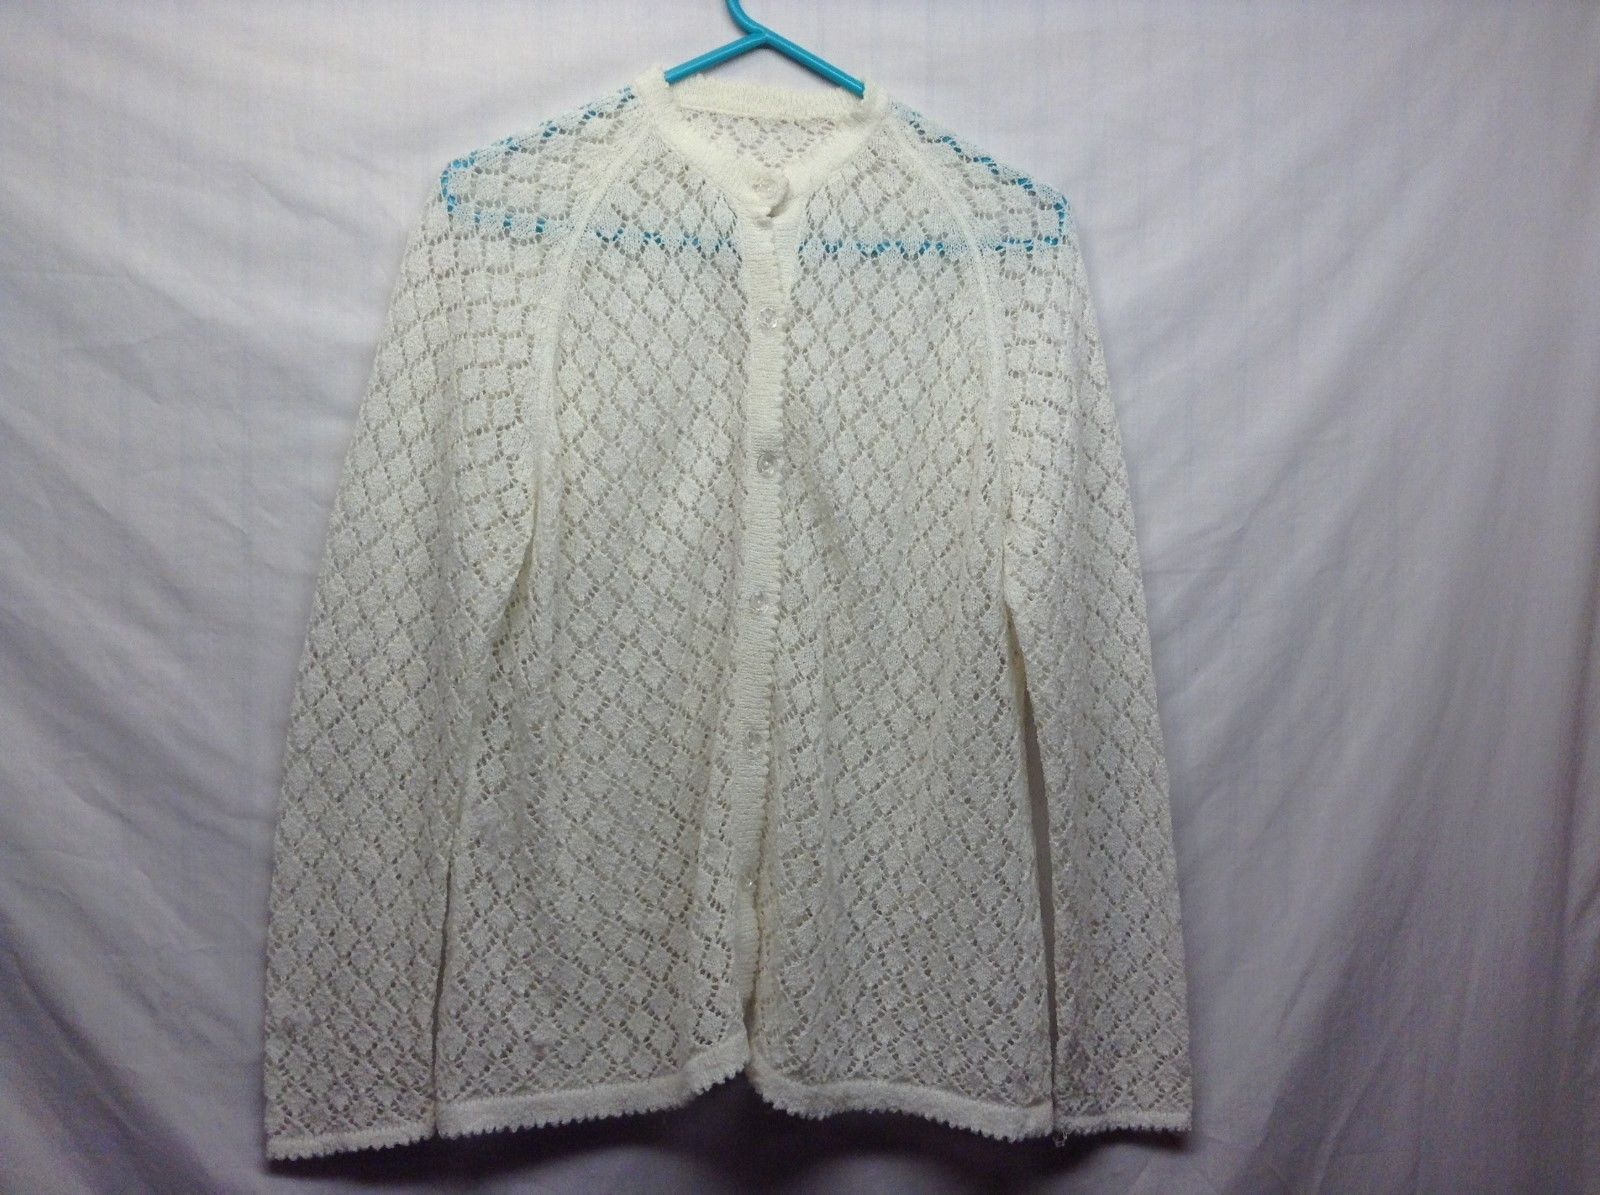 Handmade White Sheer Button Up Cardigan Style Sweater